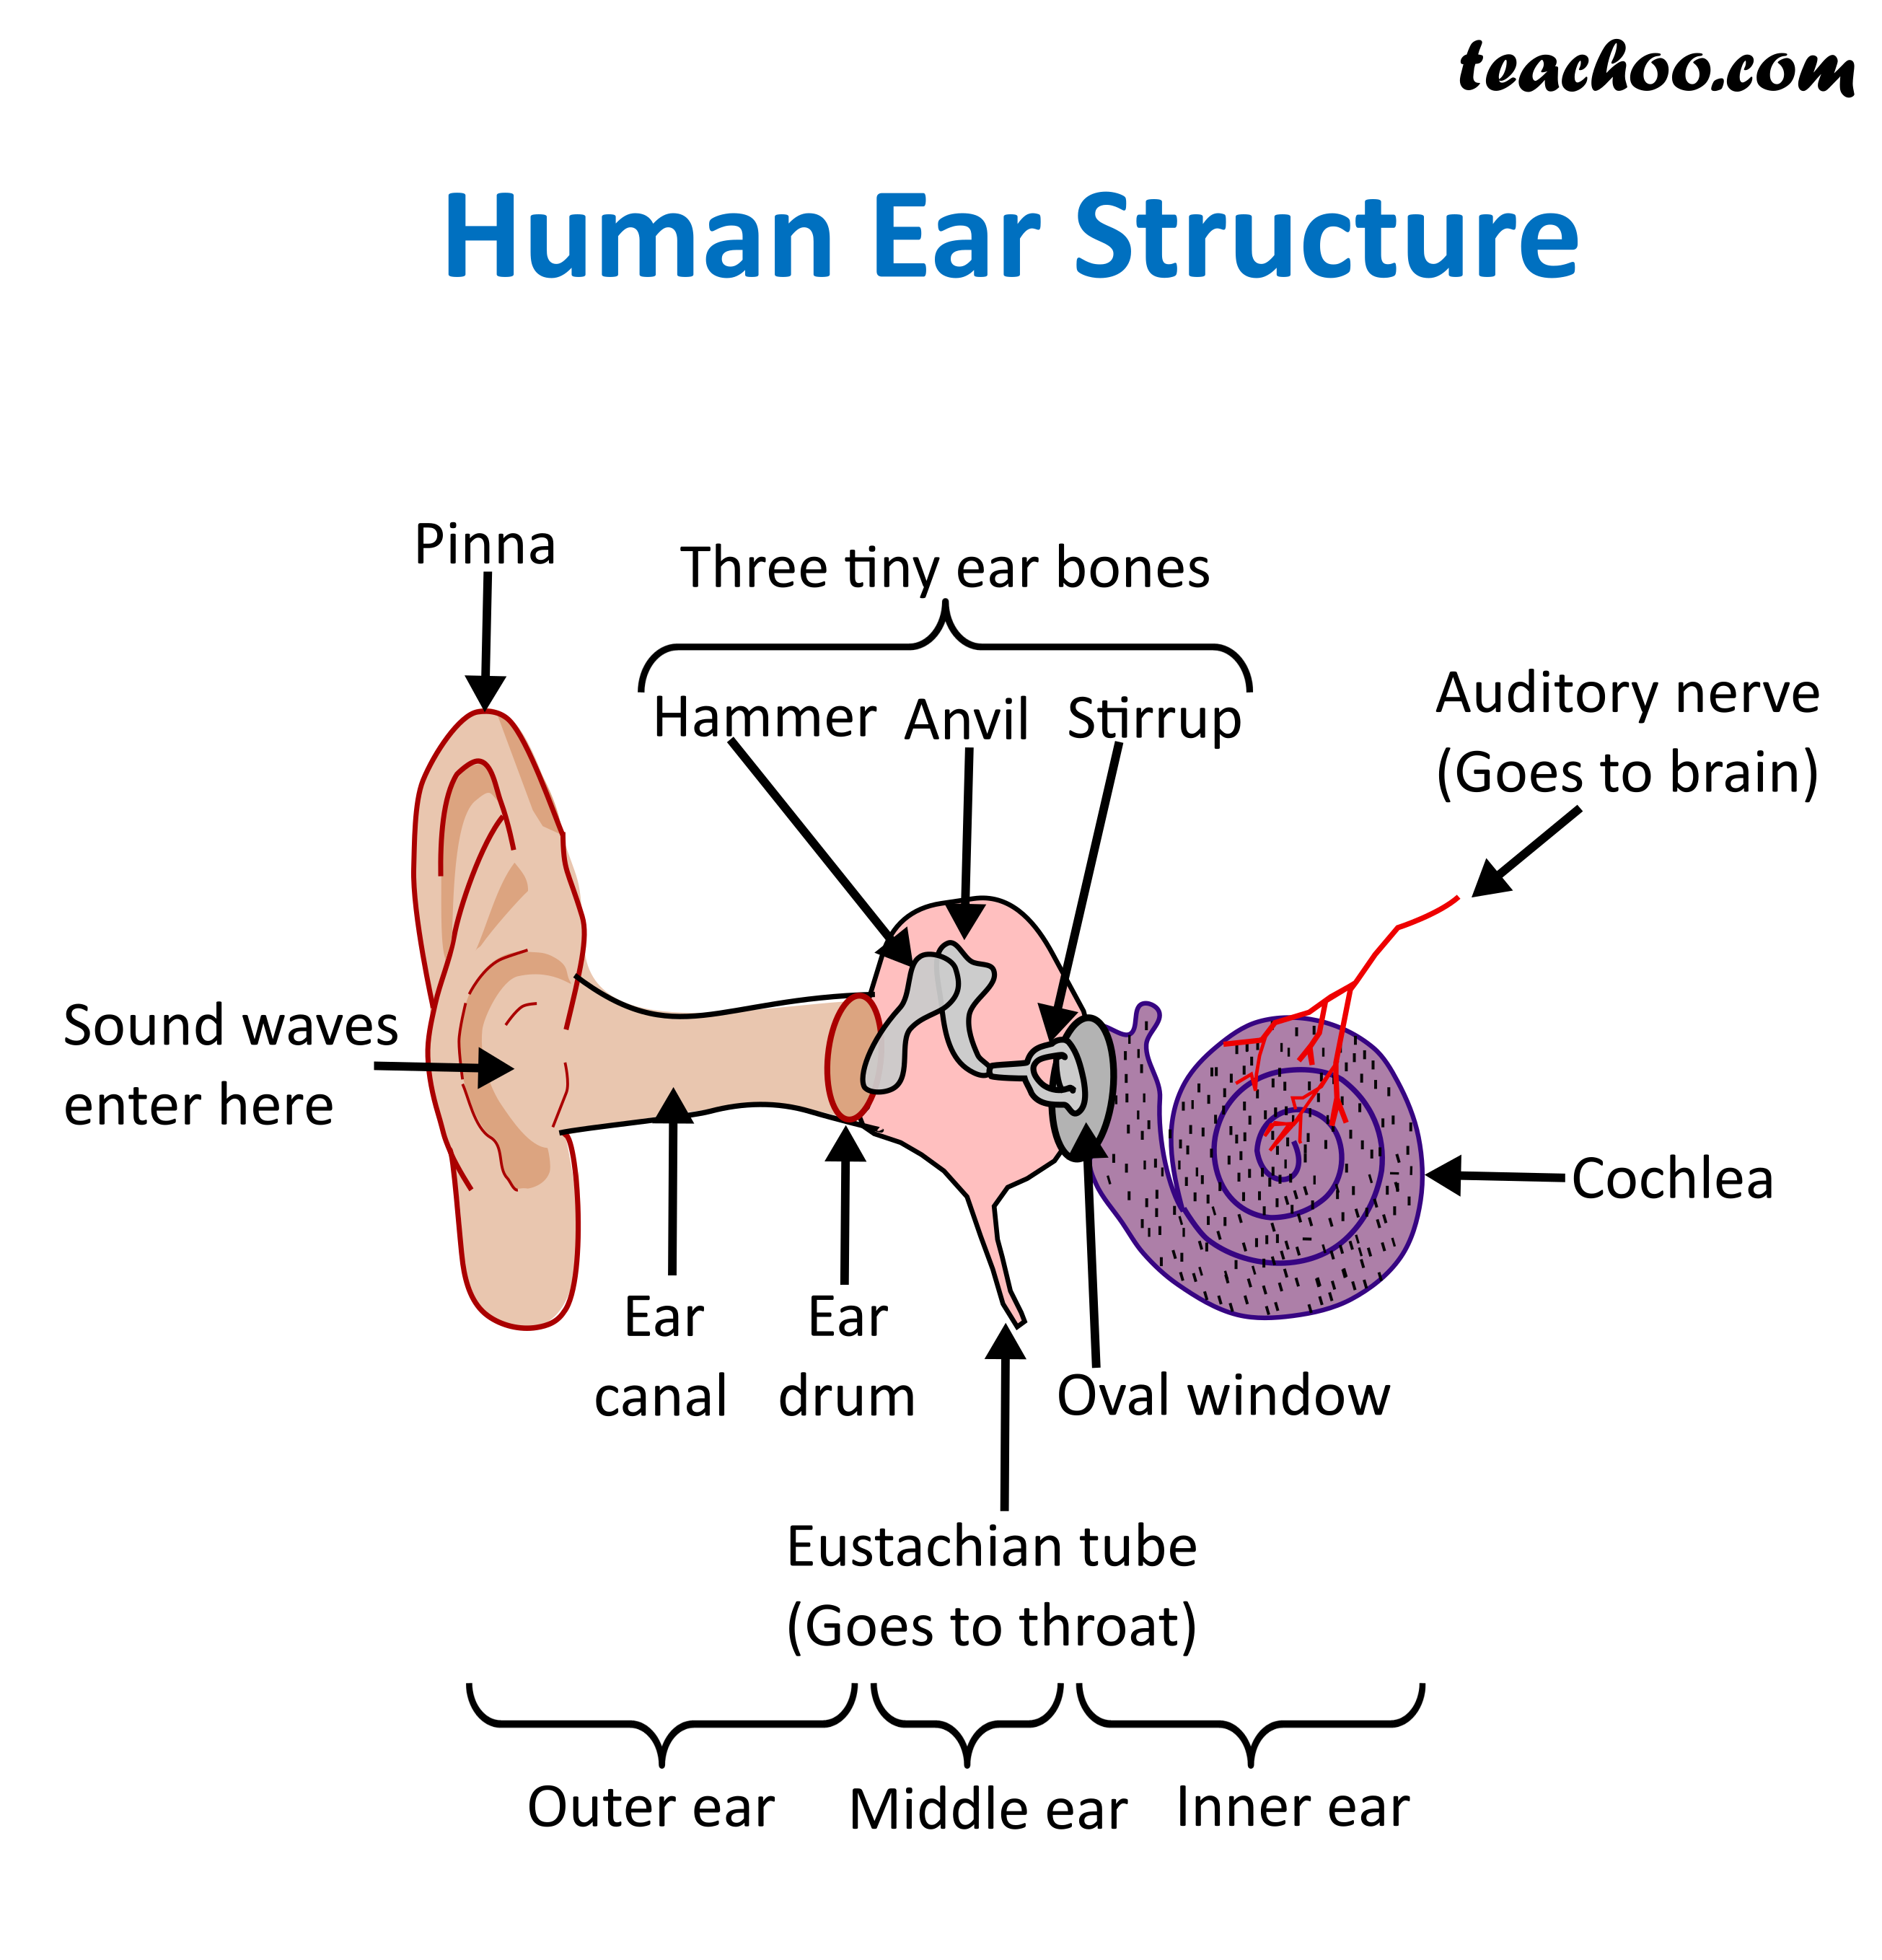 Structure And Function Of Human Ear - With Diagram